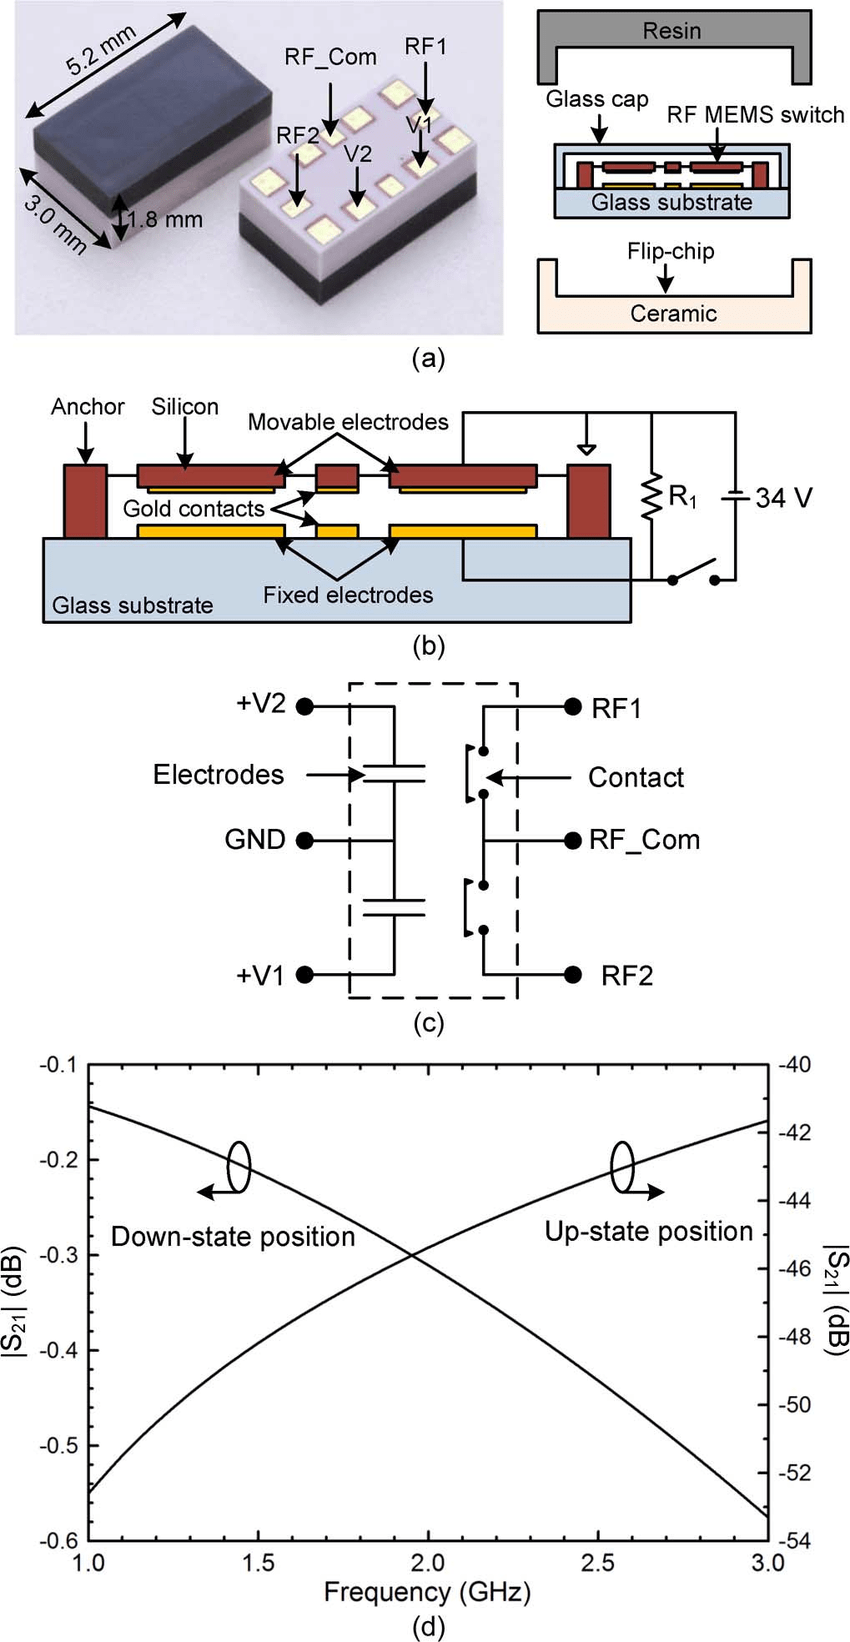 hight resolution of  a photograph and structure of the packaged spdt rf mems switch b